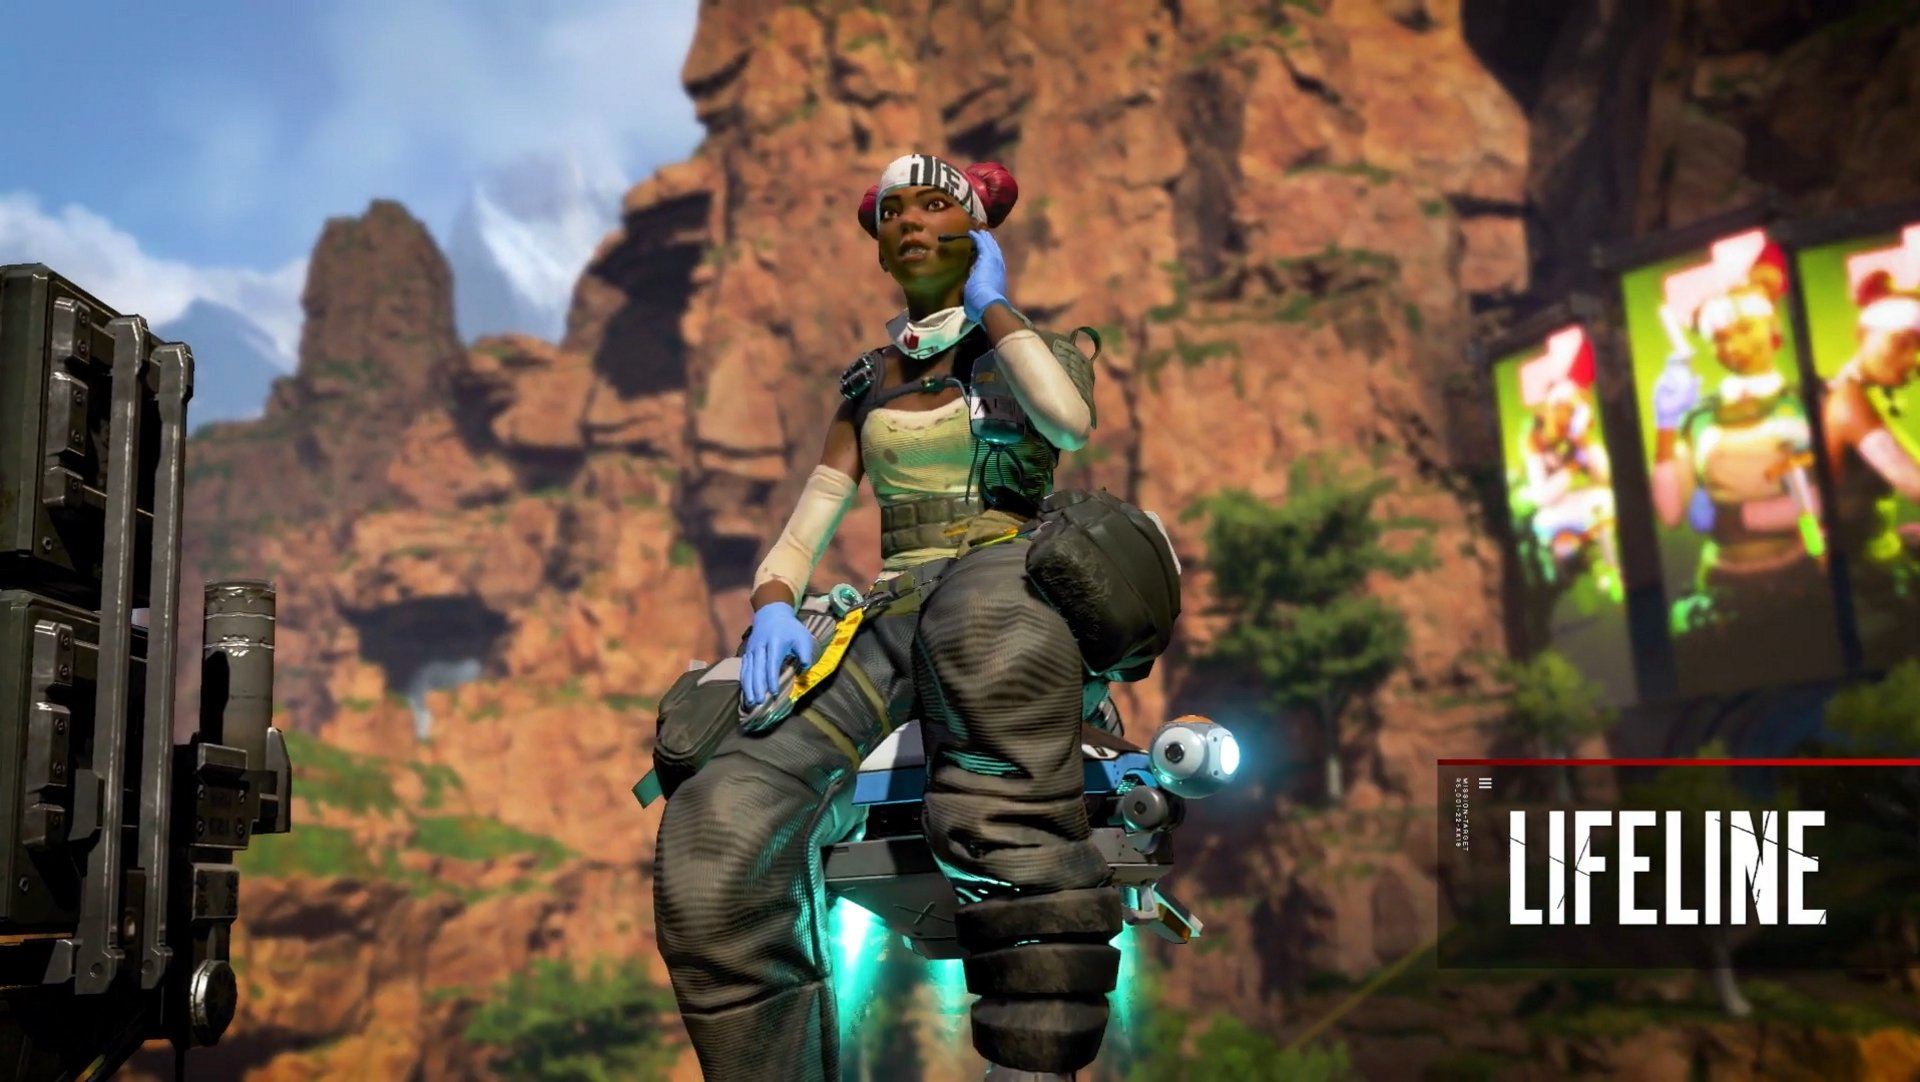 How to play Lifeline - Apex Legends Character Guide